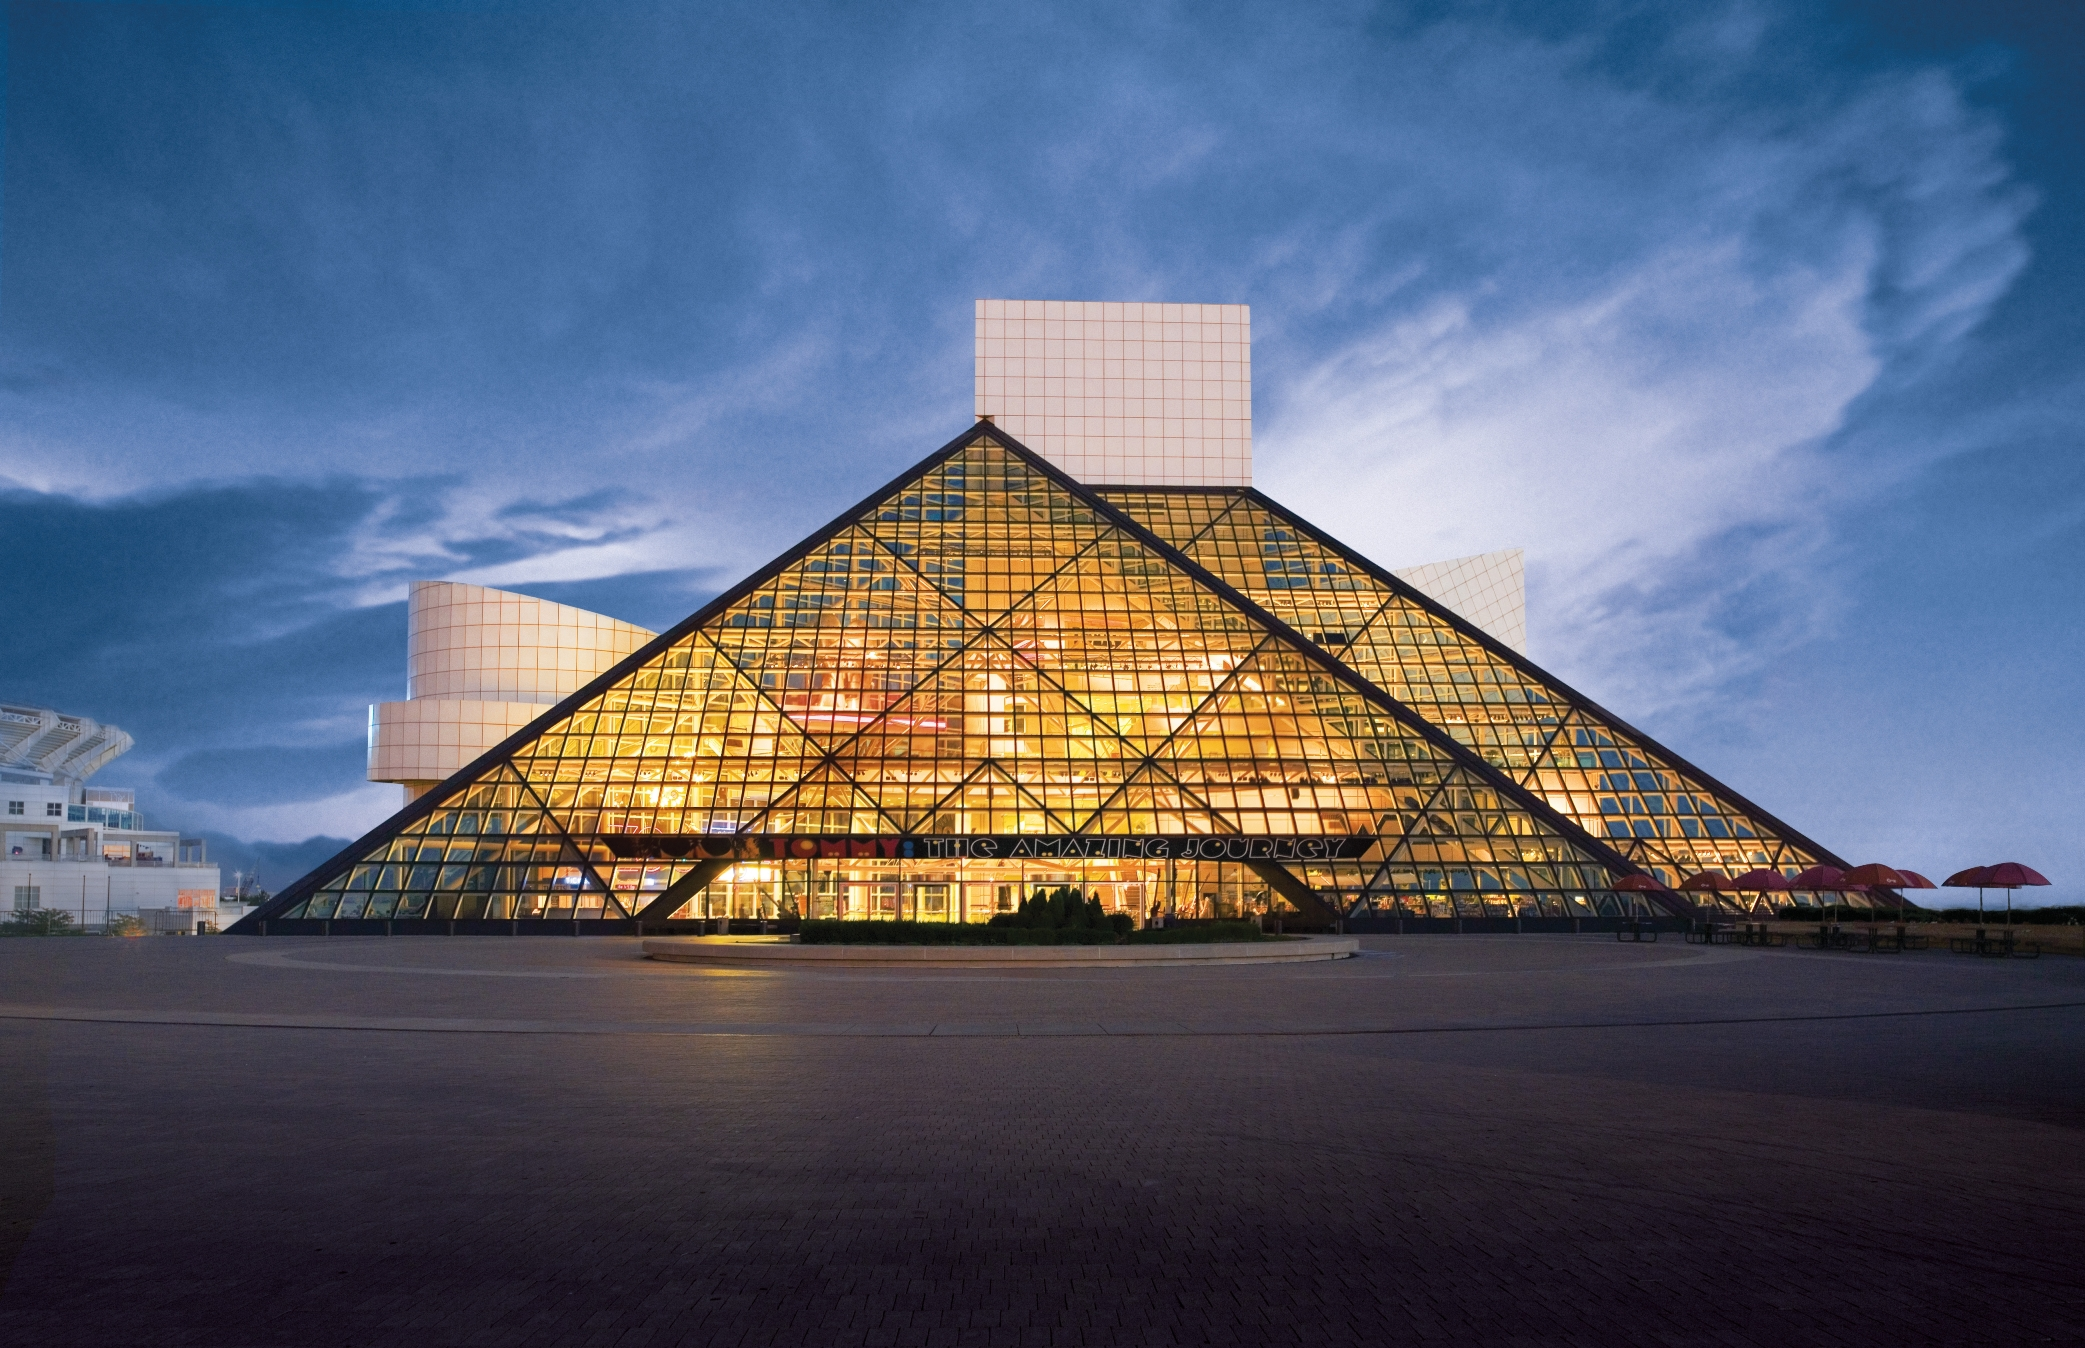 Rock and Roll Hall of Fame and Museum (Courtesy of the Rock and Roll Hall of Fame)